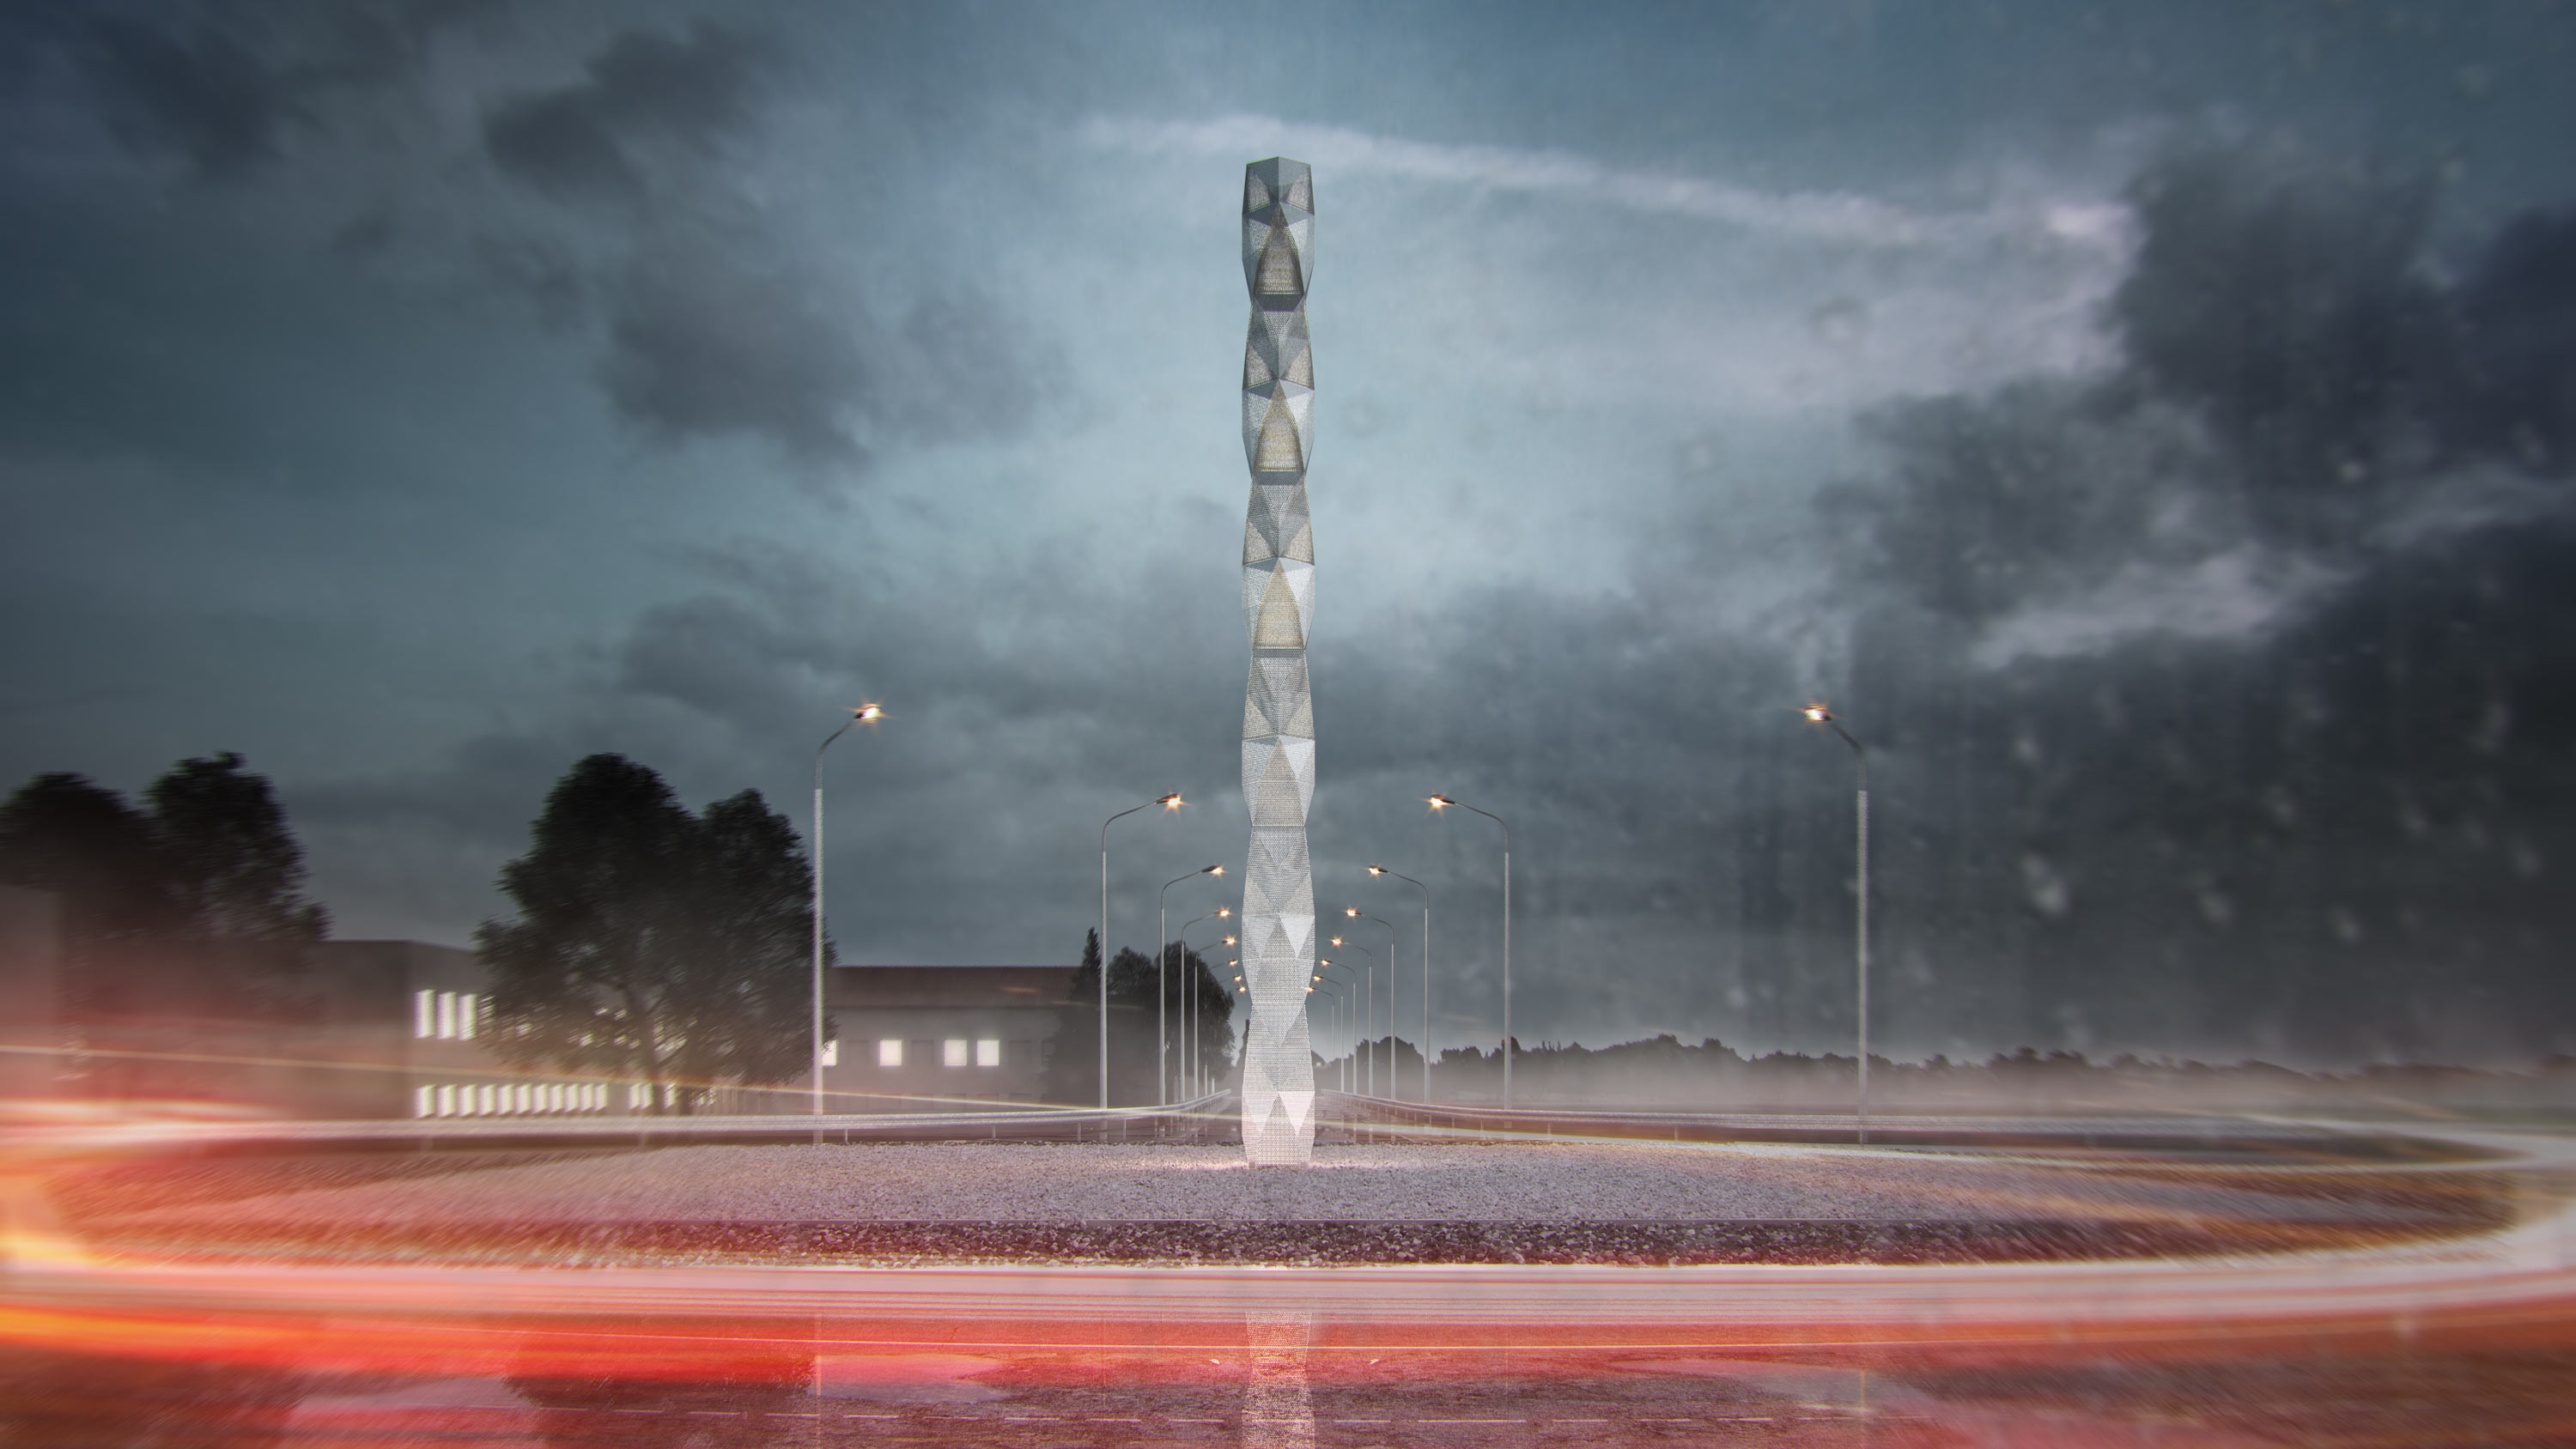 render-YAC-lamborghini-road-monument-competition-young-architects-competitions-project